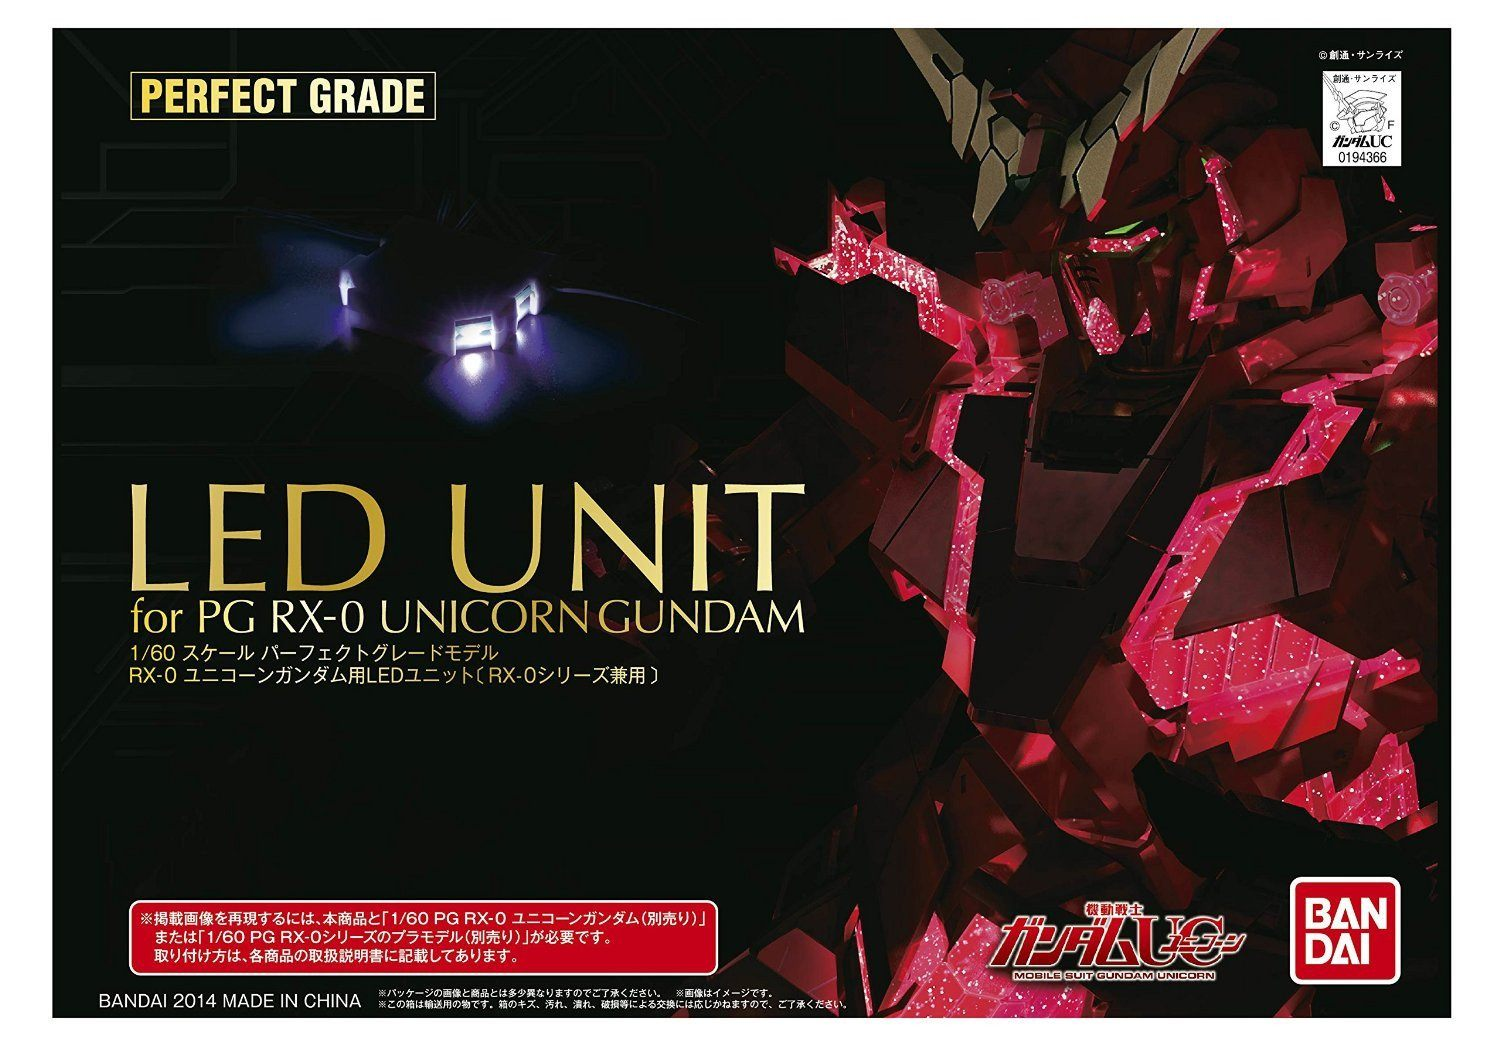 PG RX-0 Unicorn Gundam LED Unit